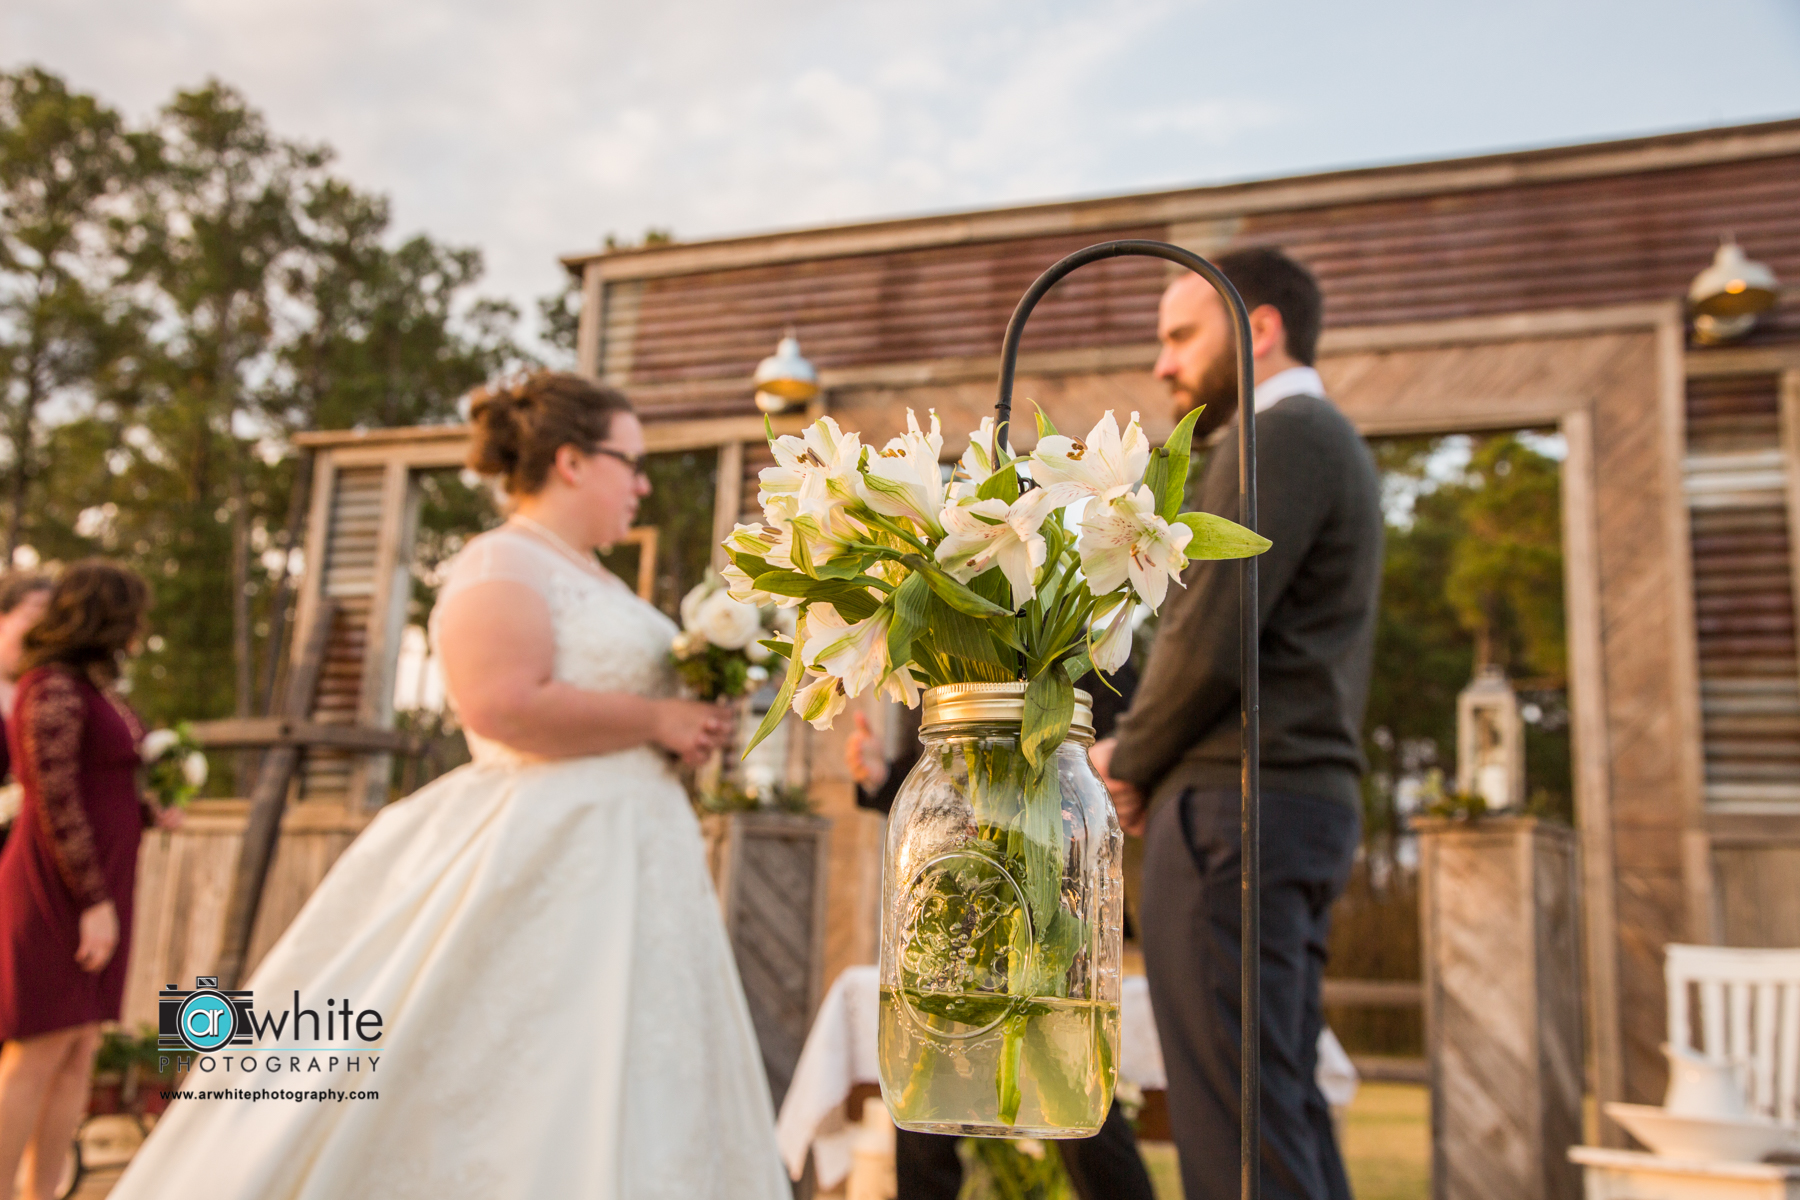 A mason jar with white flowers is used at a barn wedding for isle decoration at the alter.